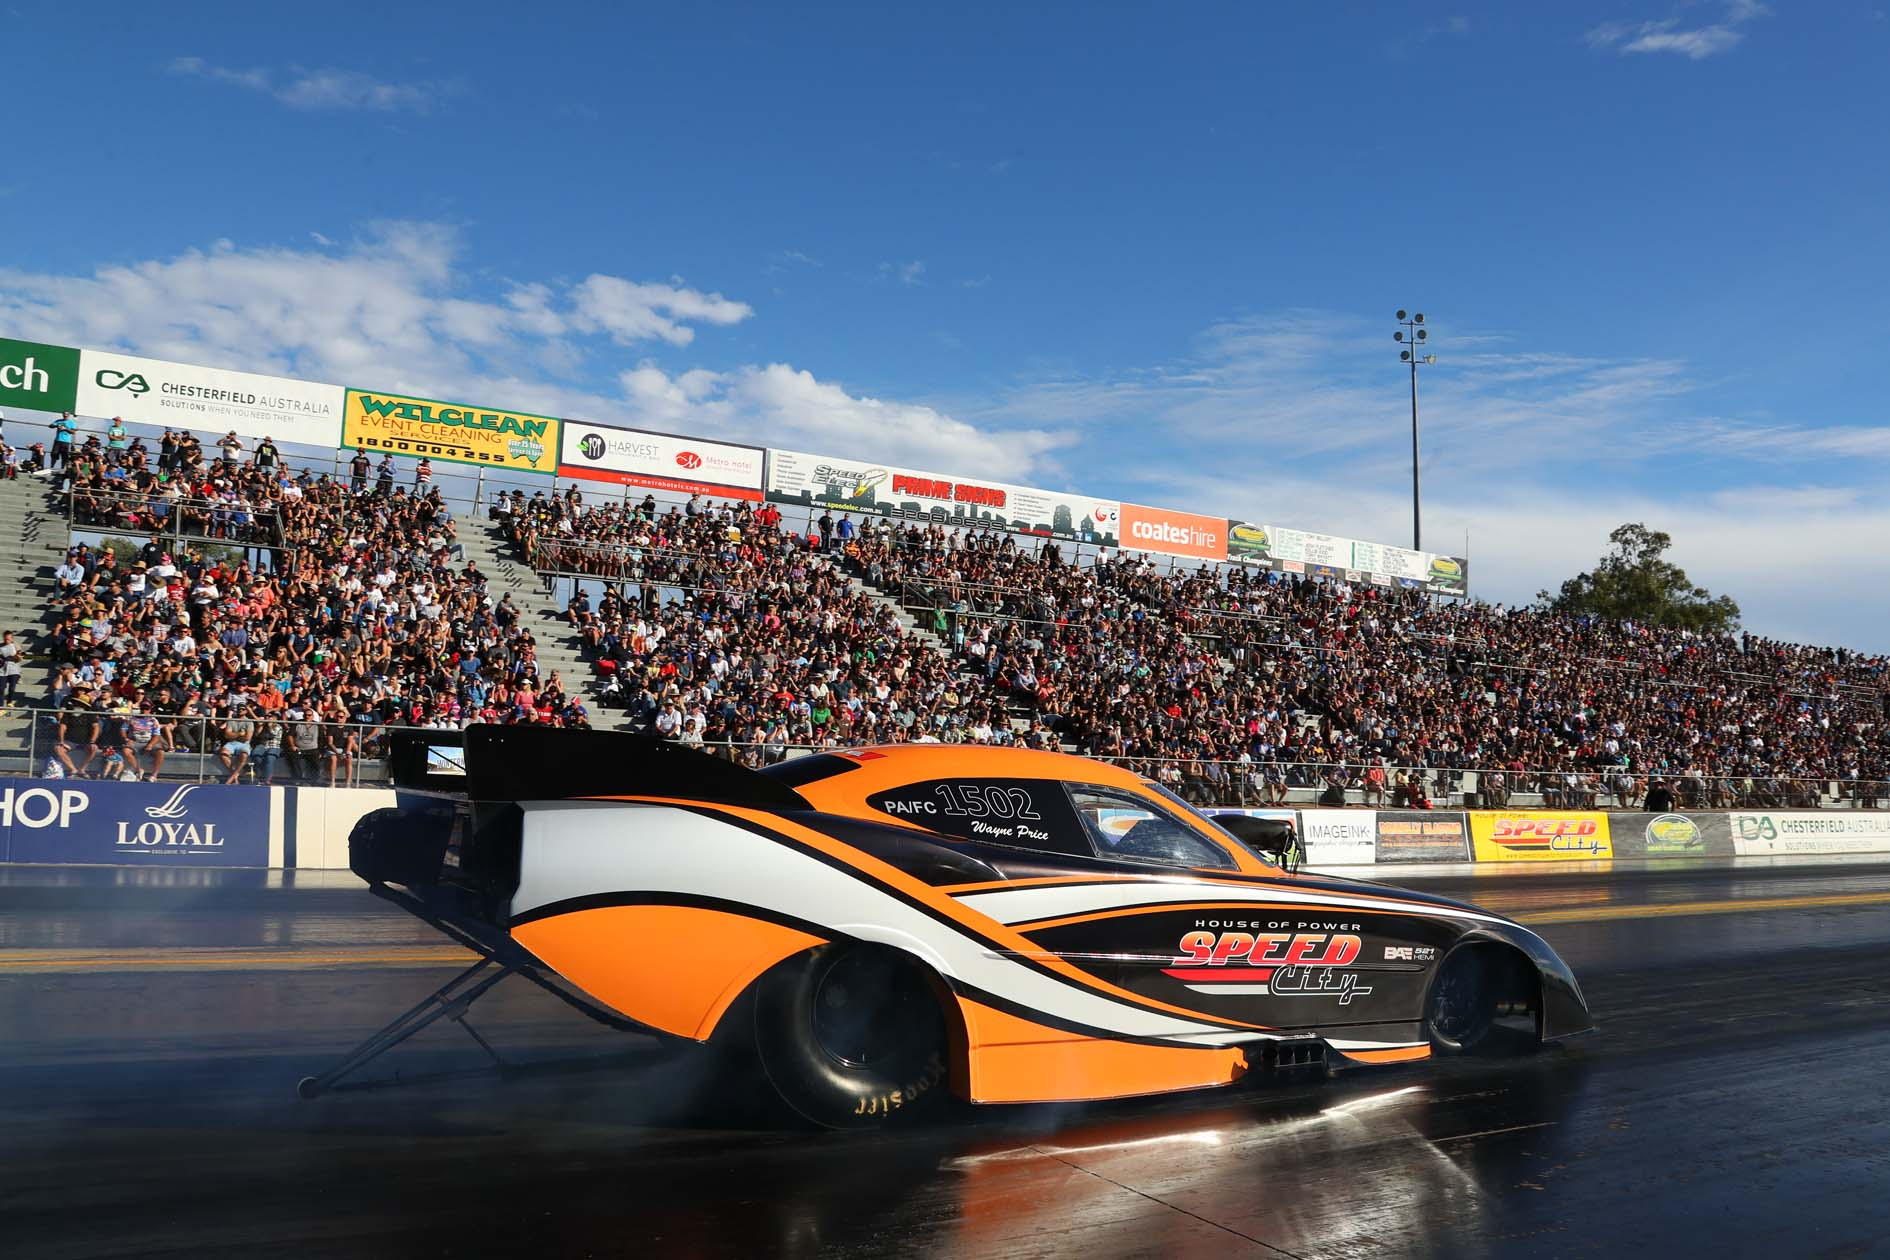 Wayne Price at Winternationals with a huge crowd.